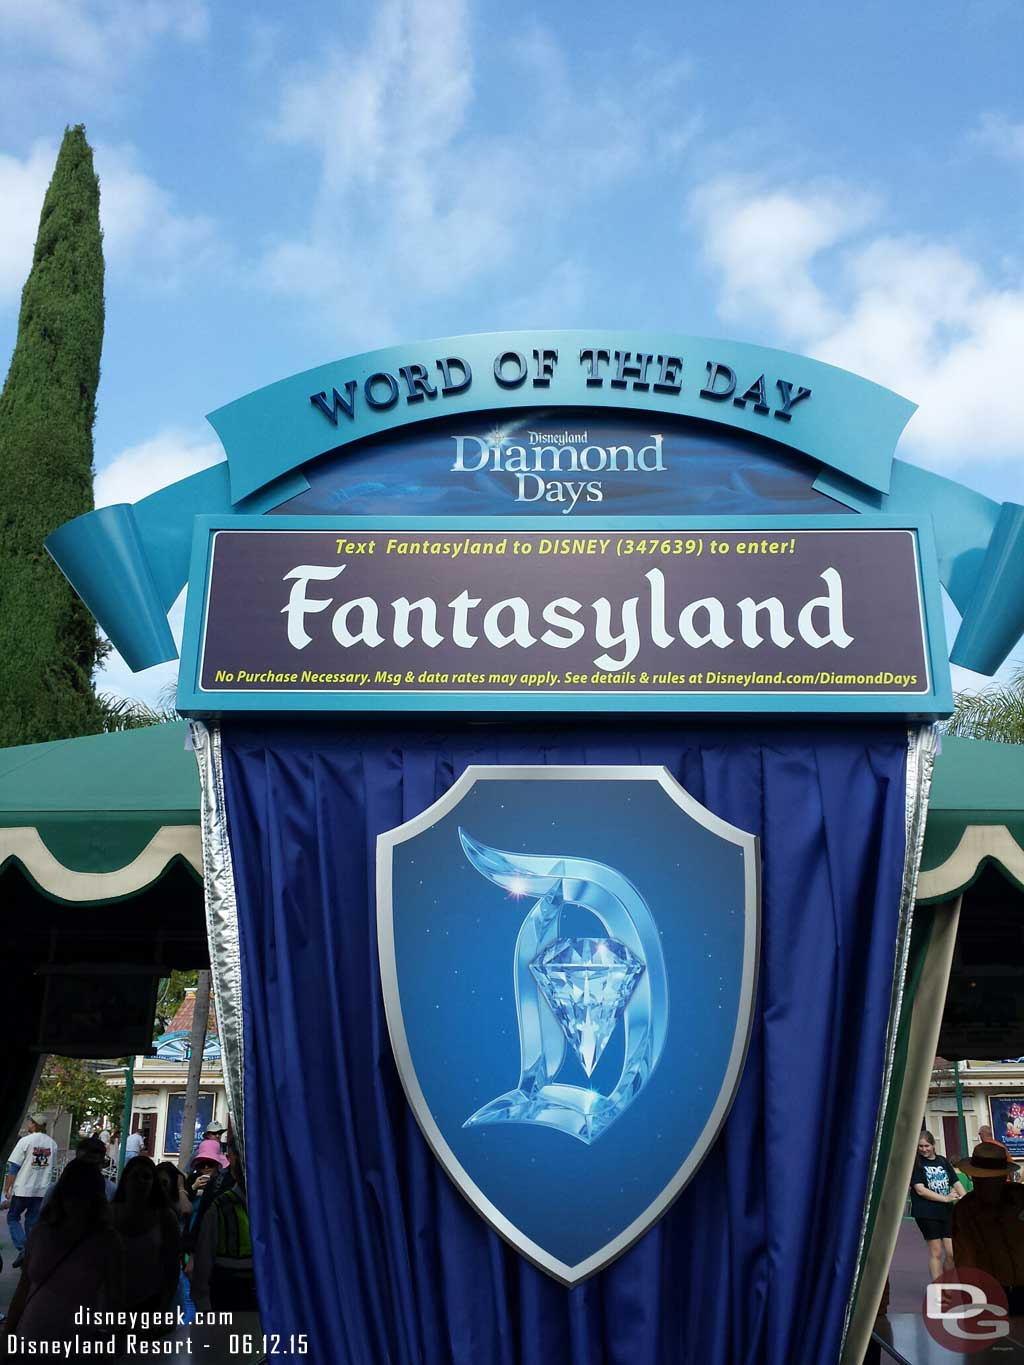 Just arrived at #Disneyland. The word of the day today if you need it